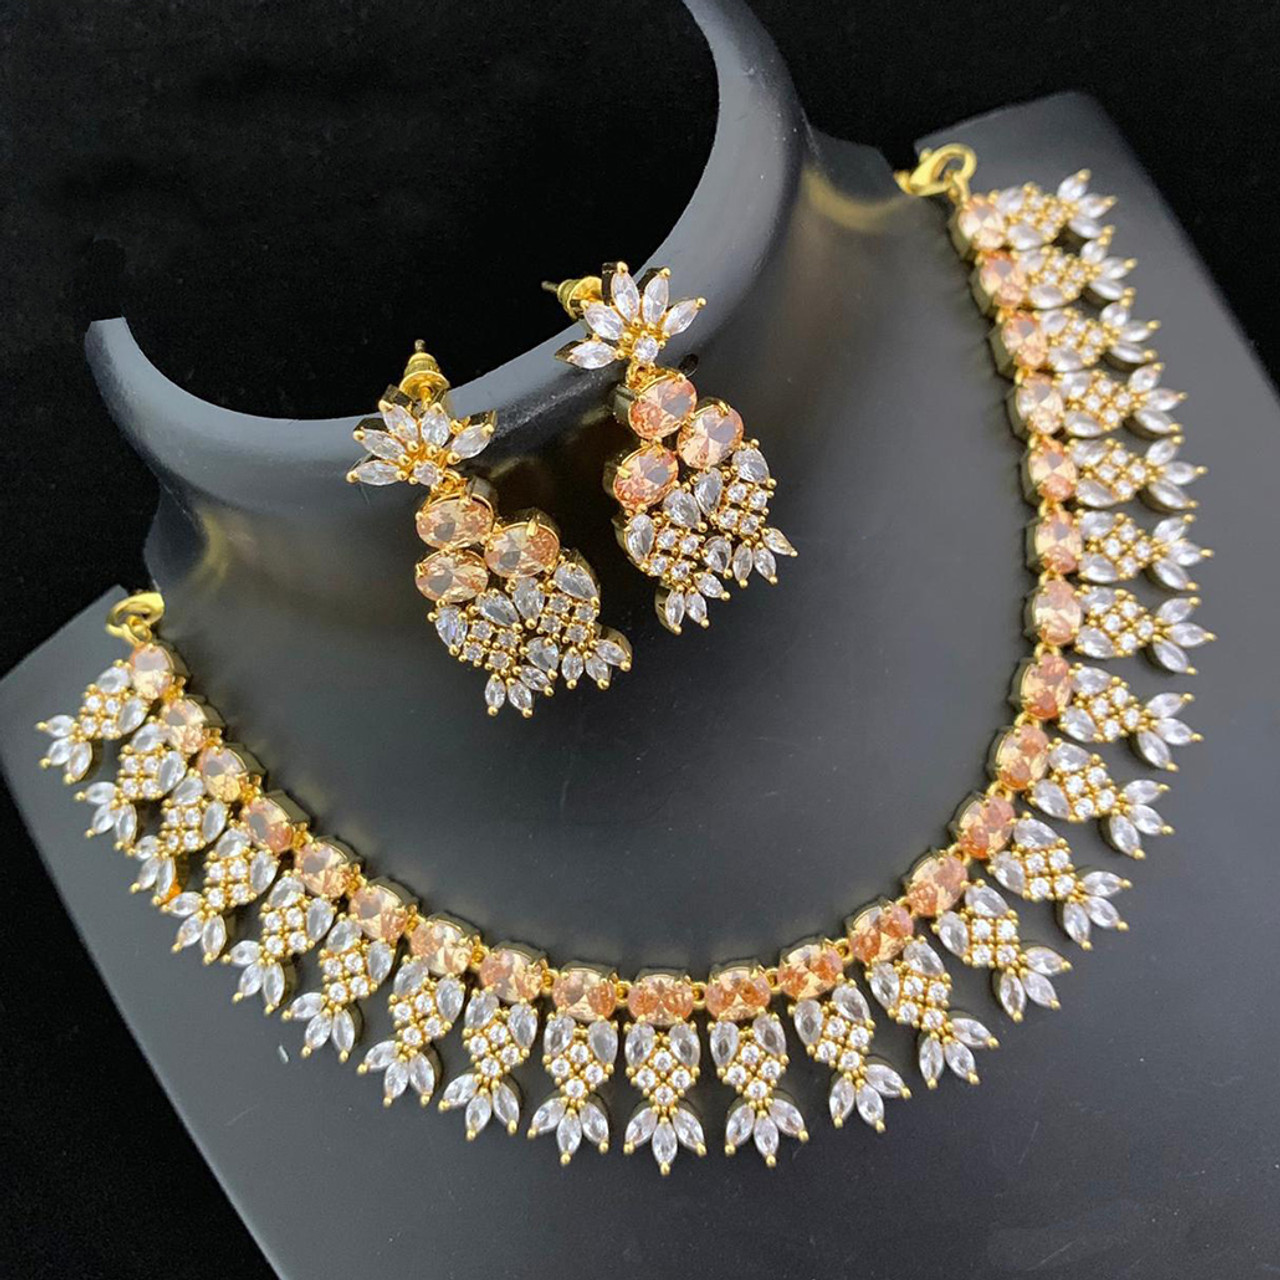 Handmade Gold Plated American Diamond Choker Necklace With Topaz Stones Indian Designs